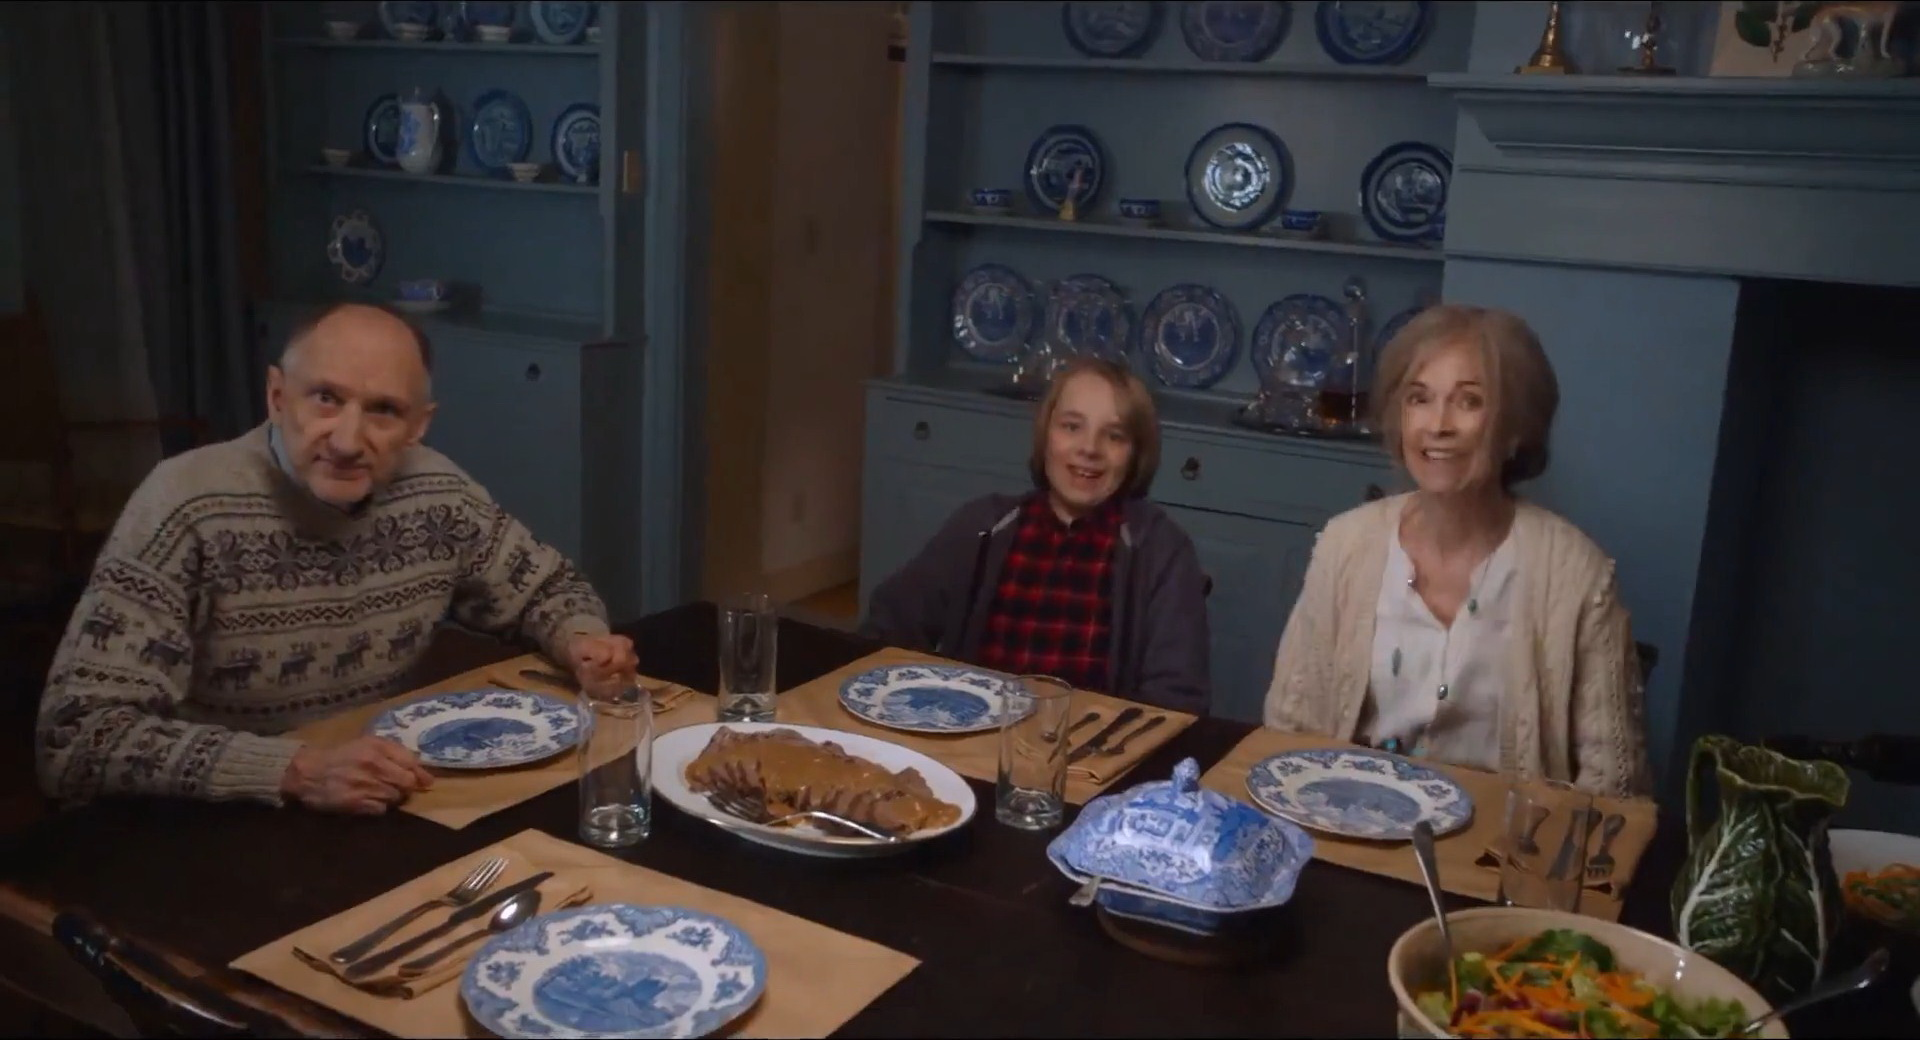 The visit, de M. Night Shyamalan